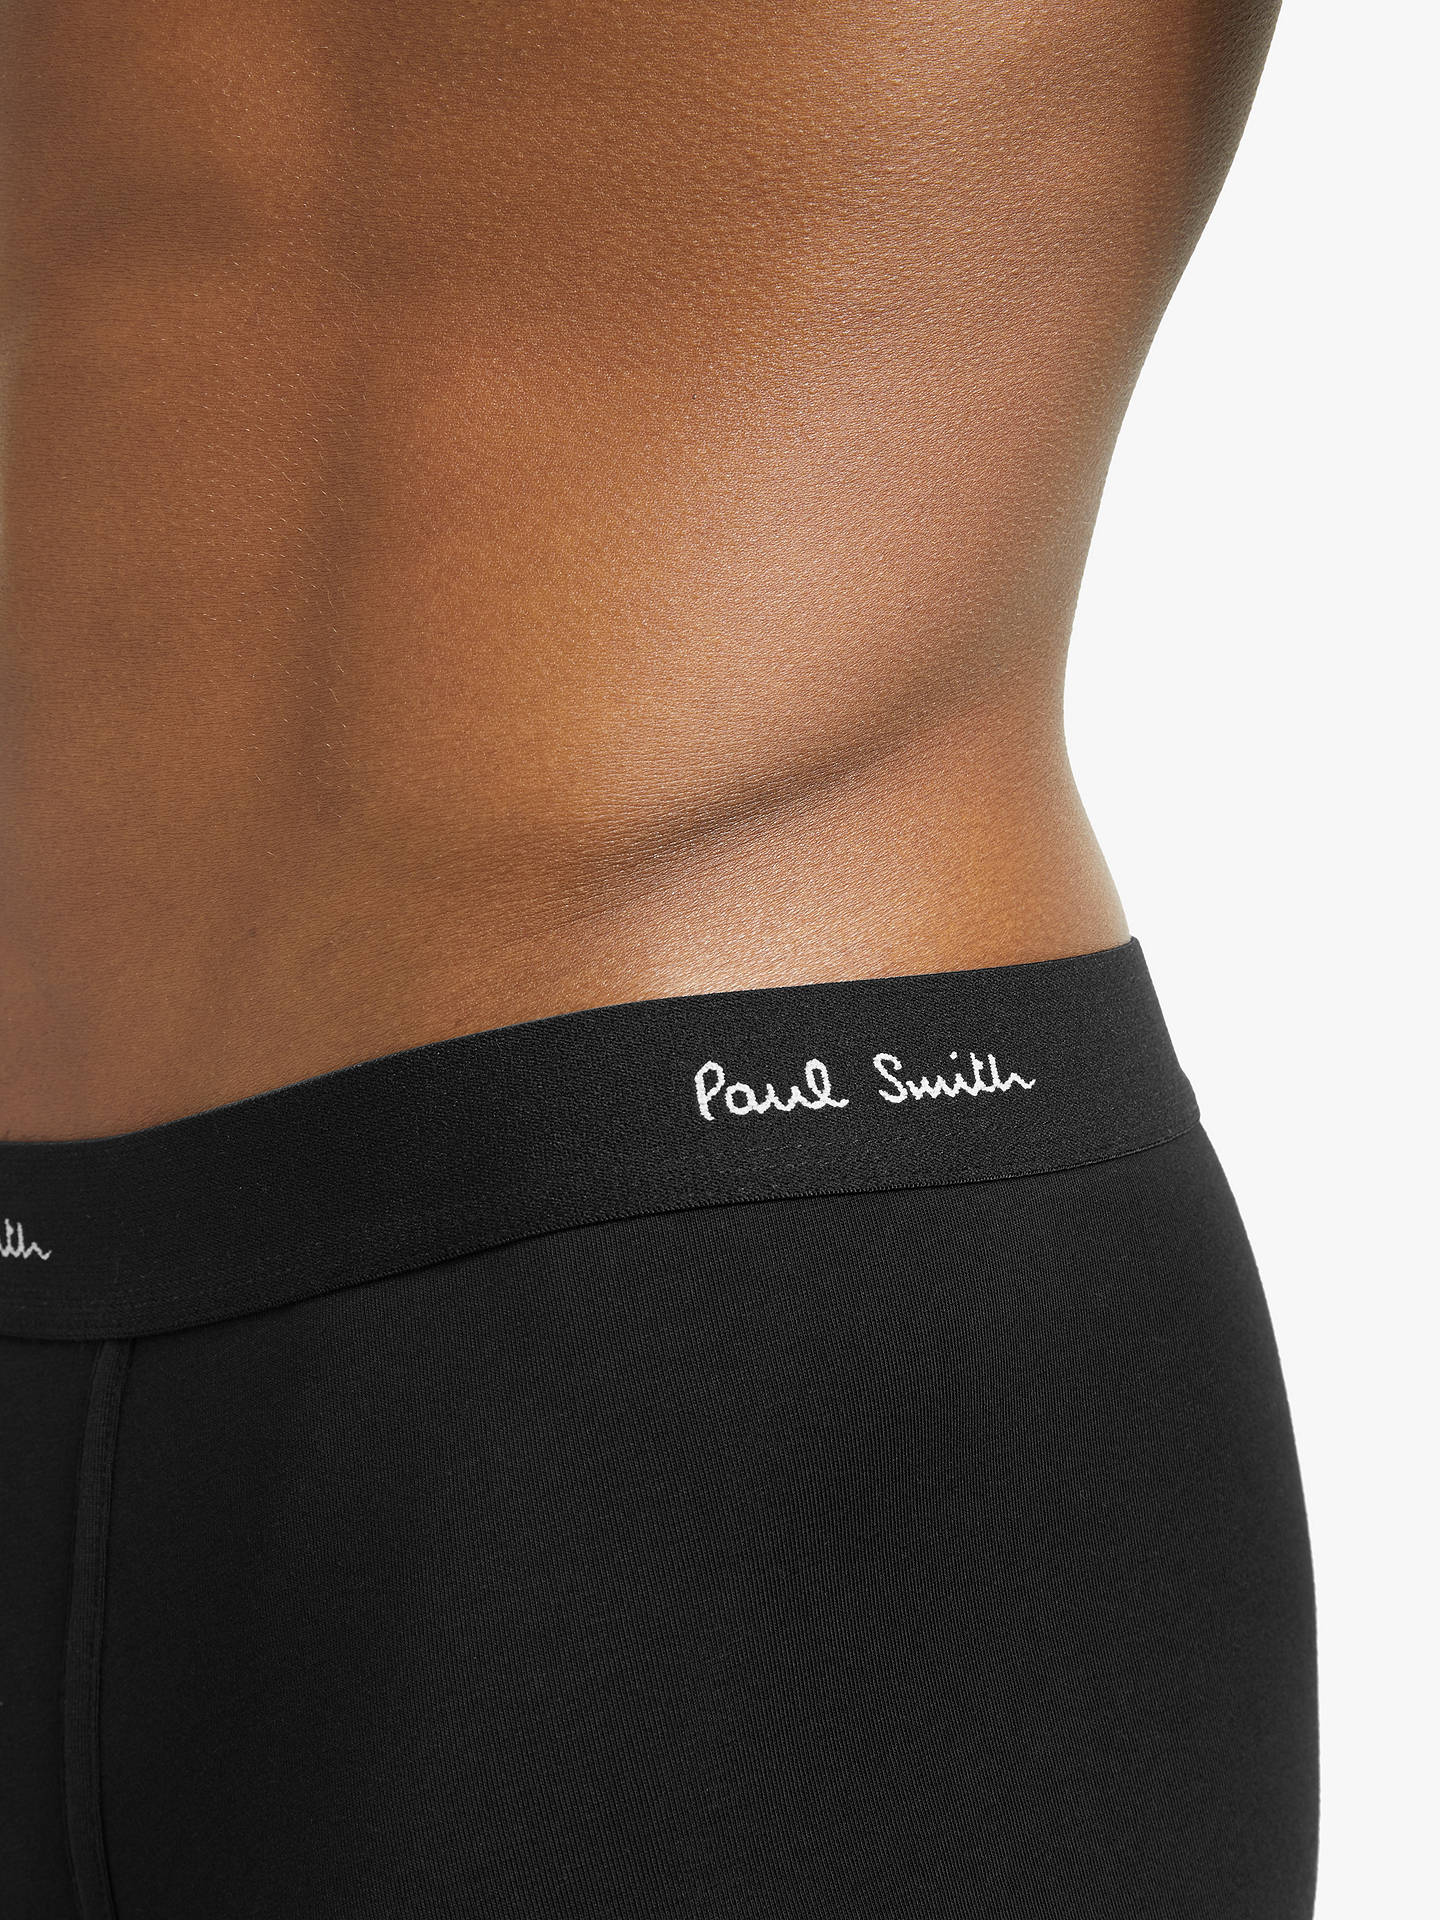 Buy Paul Smith Boxer Briefs, Pack of 3, Black, S Online at johnlewis.com